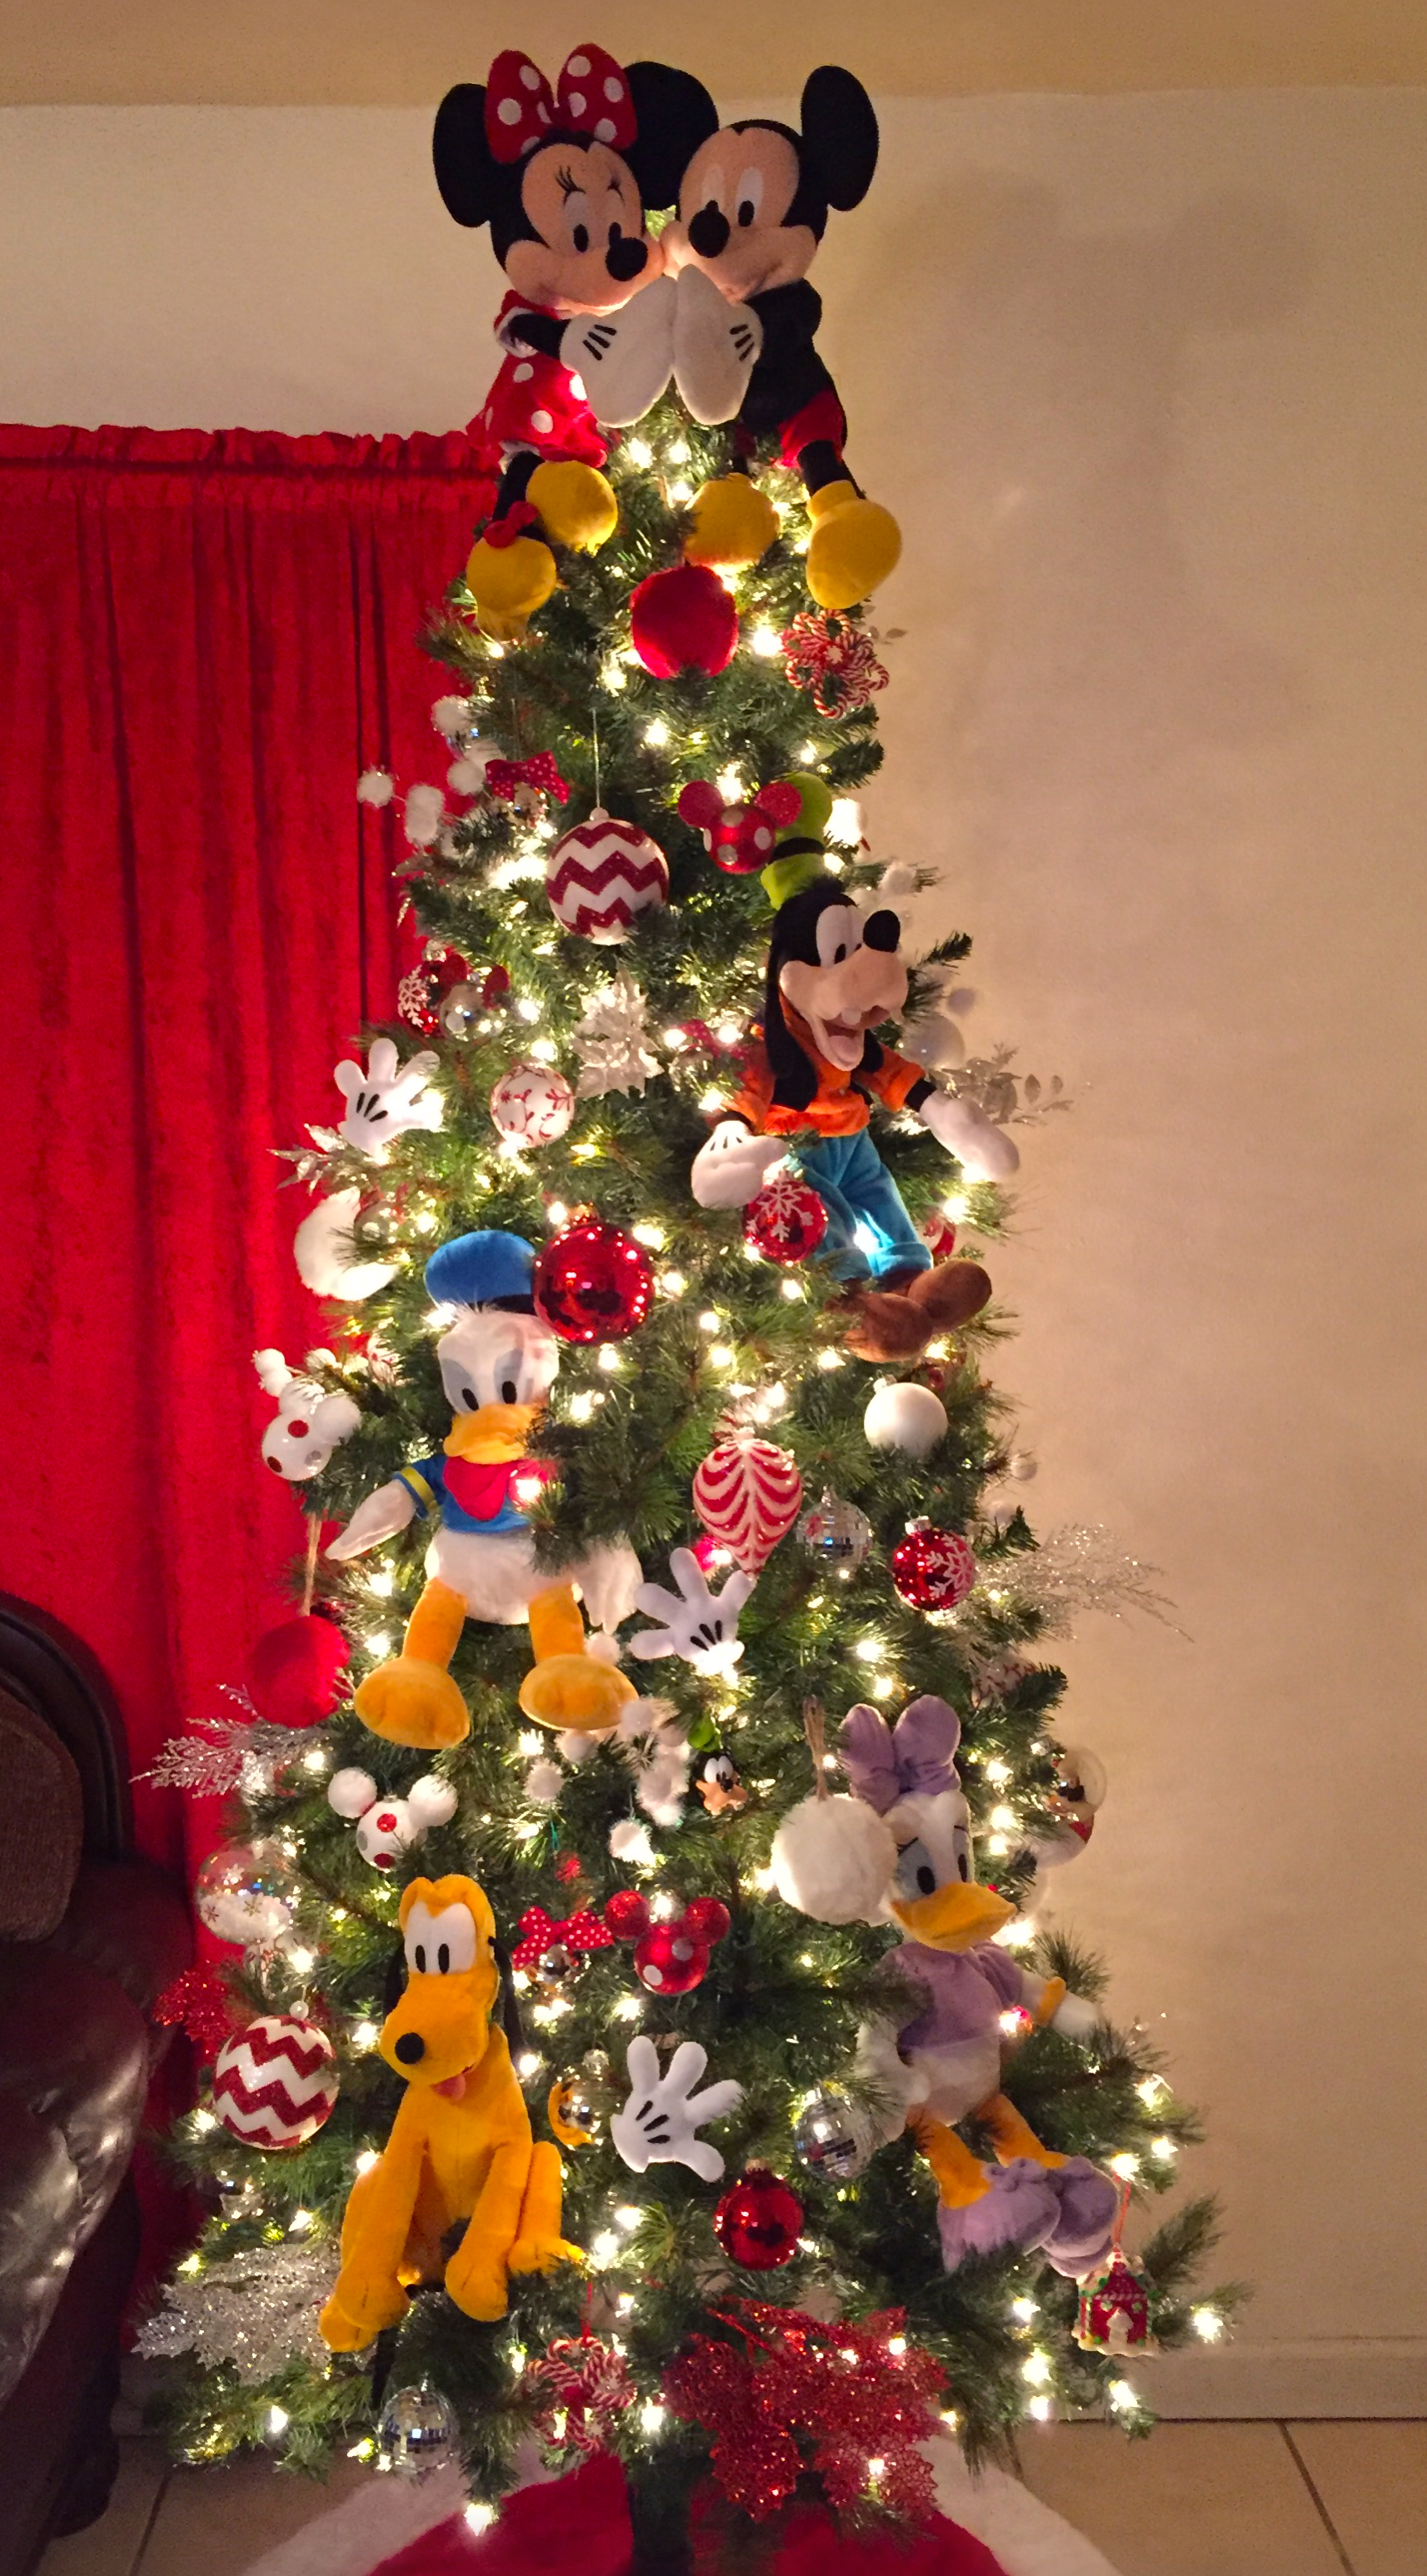 disney christmas tree mickey mouse disney christmas decorations christmas tree themes xmas tree - Disney Christmas Tree